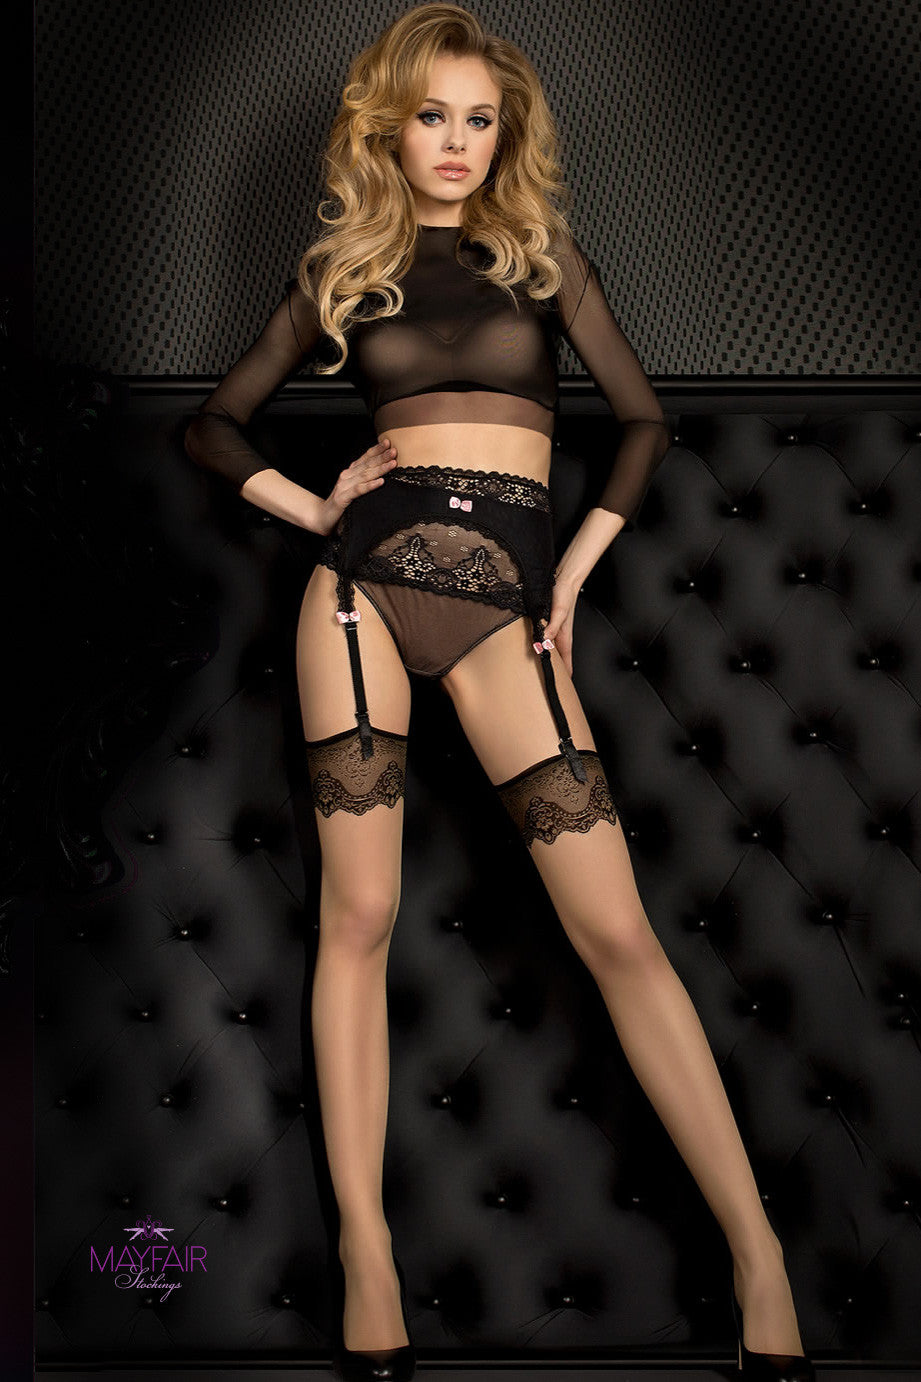 Ballerina Smeraldo Nude Stockings - Mayfair Stockings